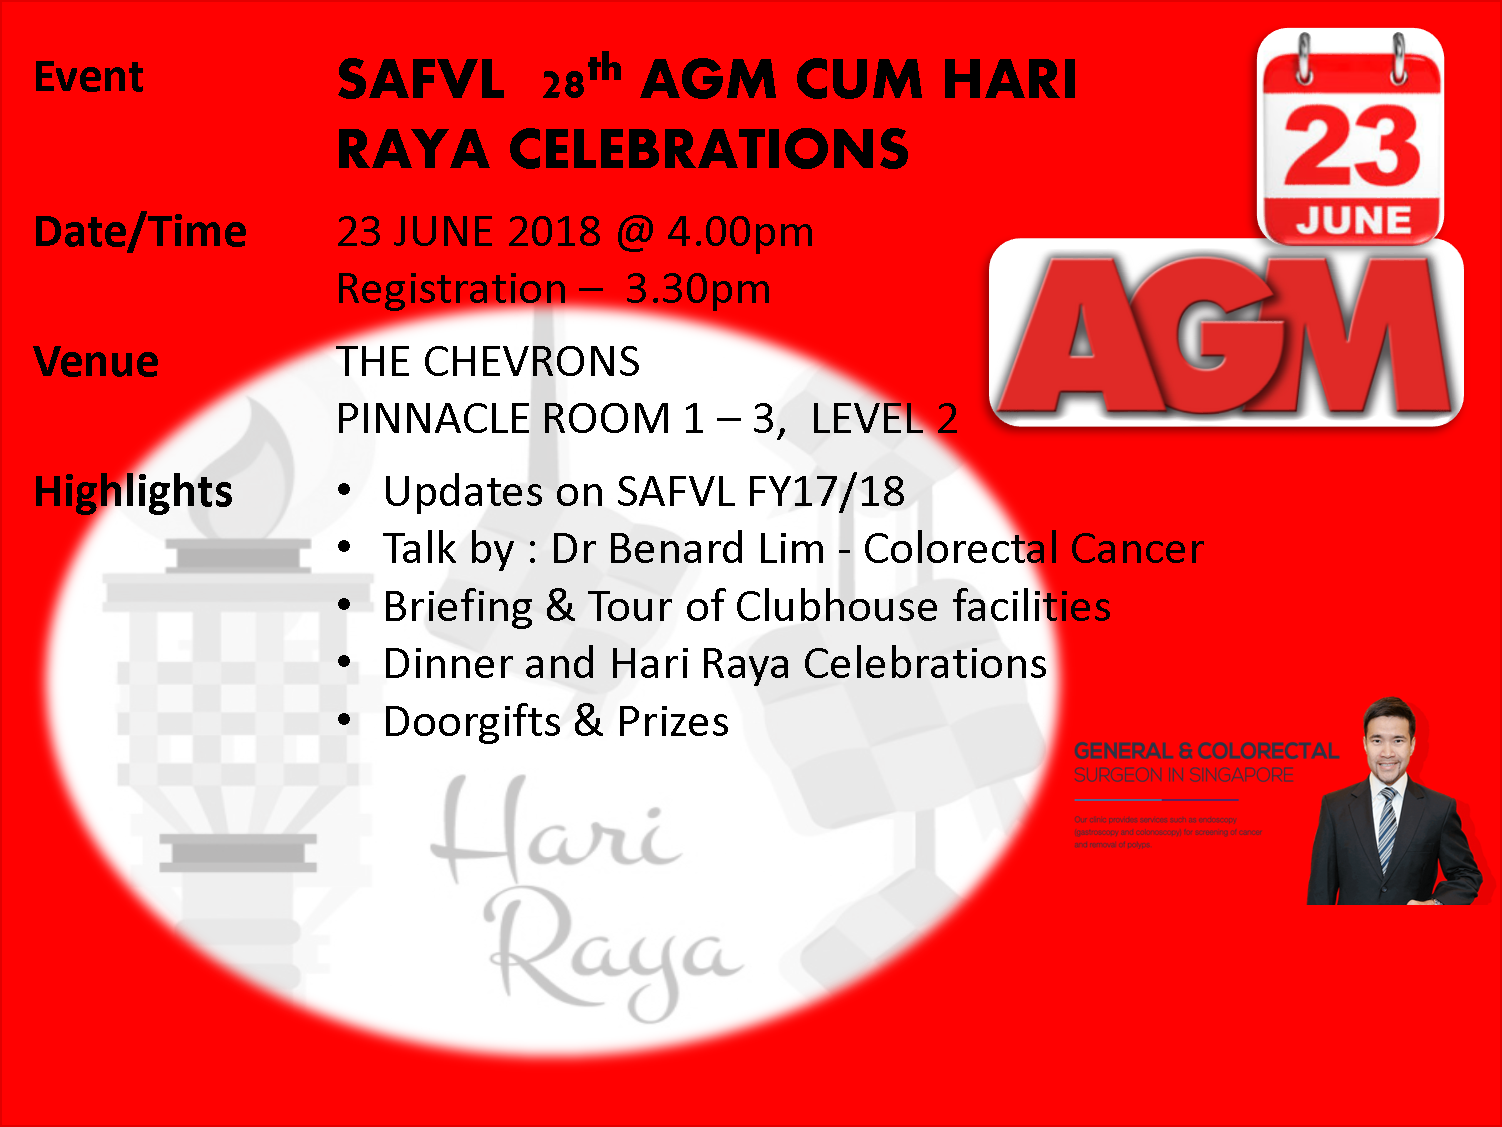 SAFVL 28th Annual General Meeting cum Hari Raya Celebrations